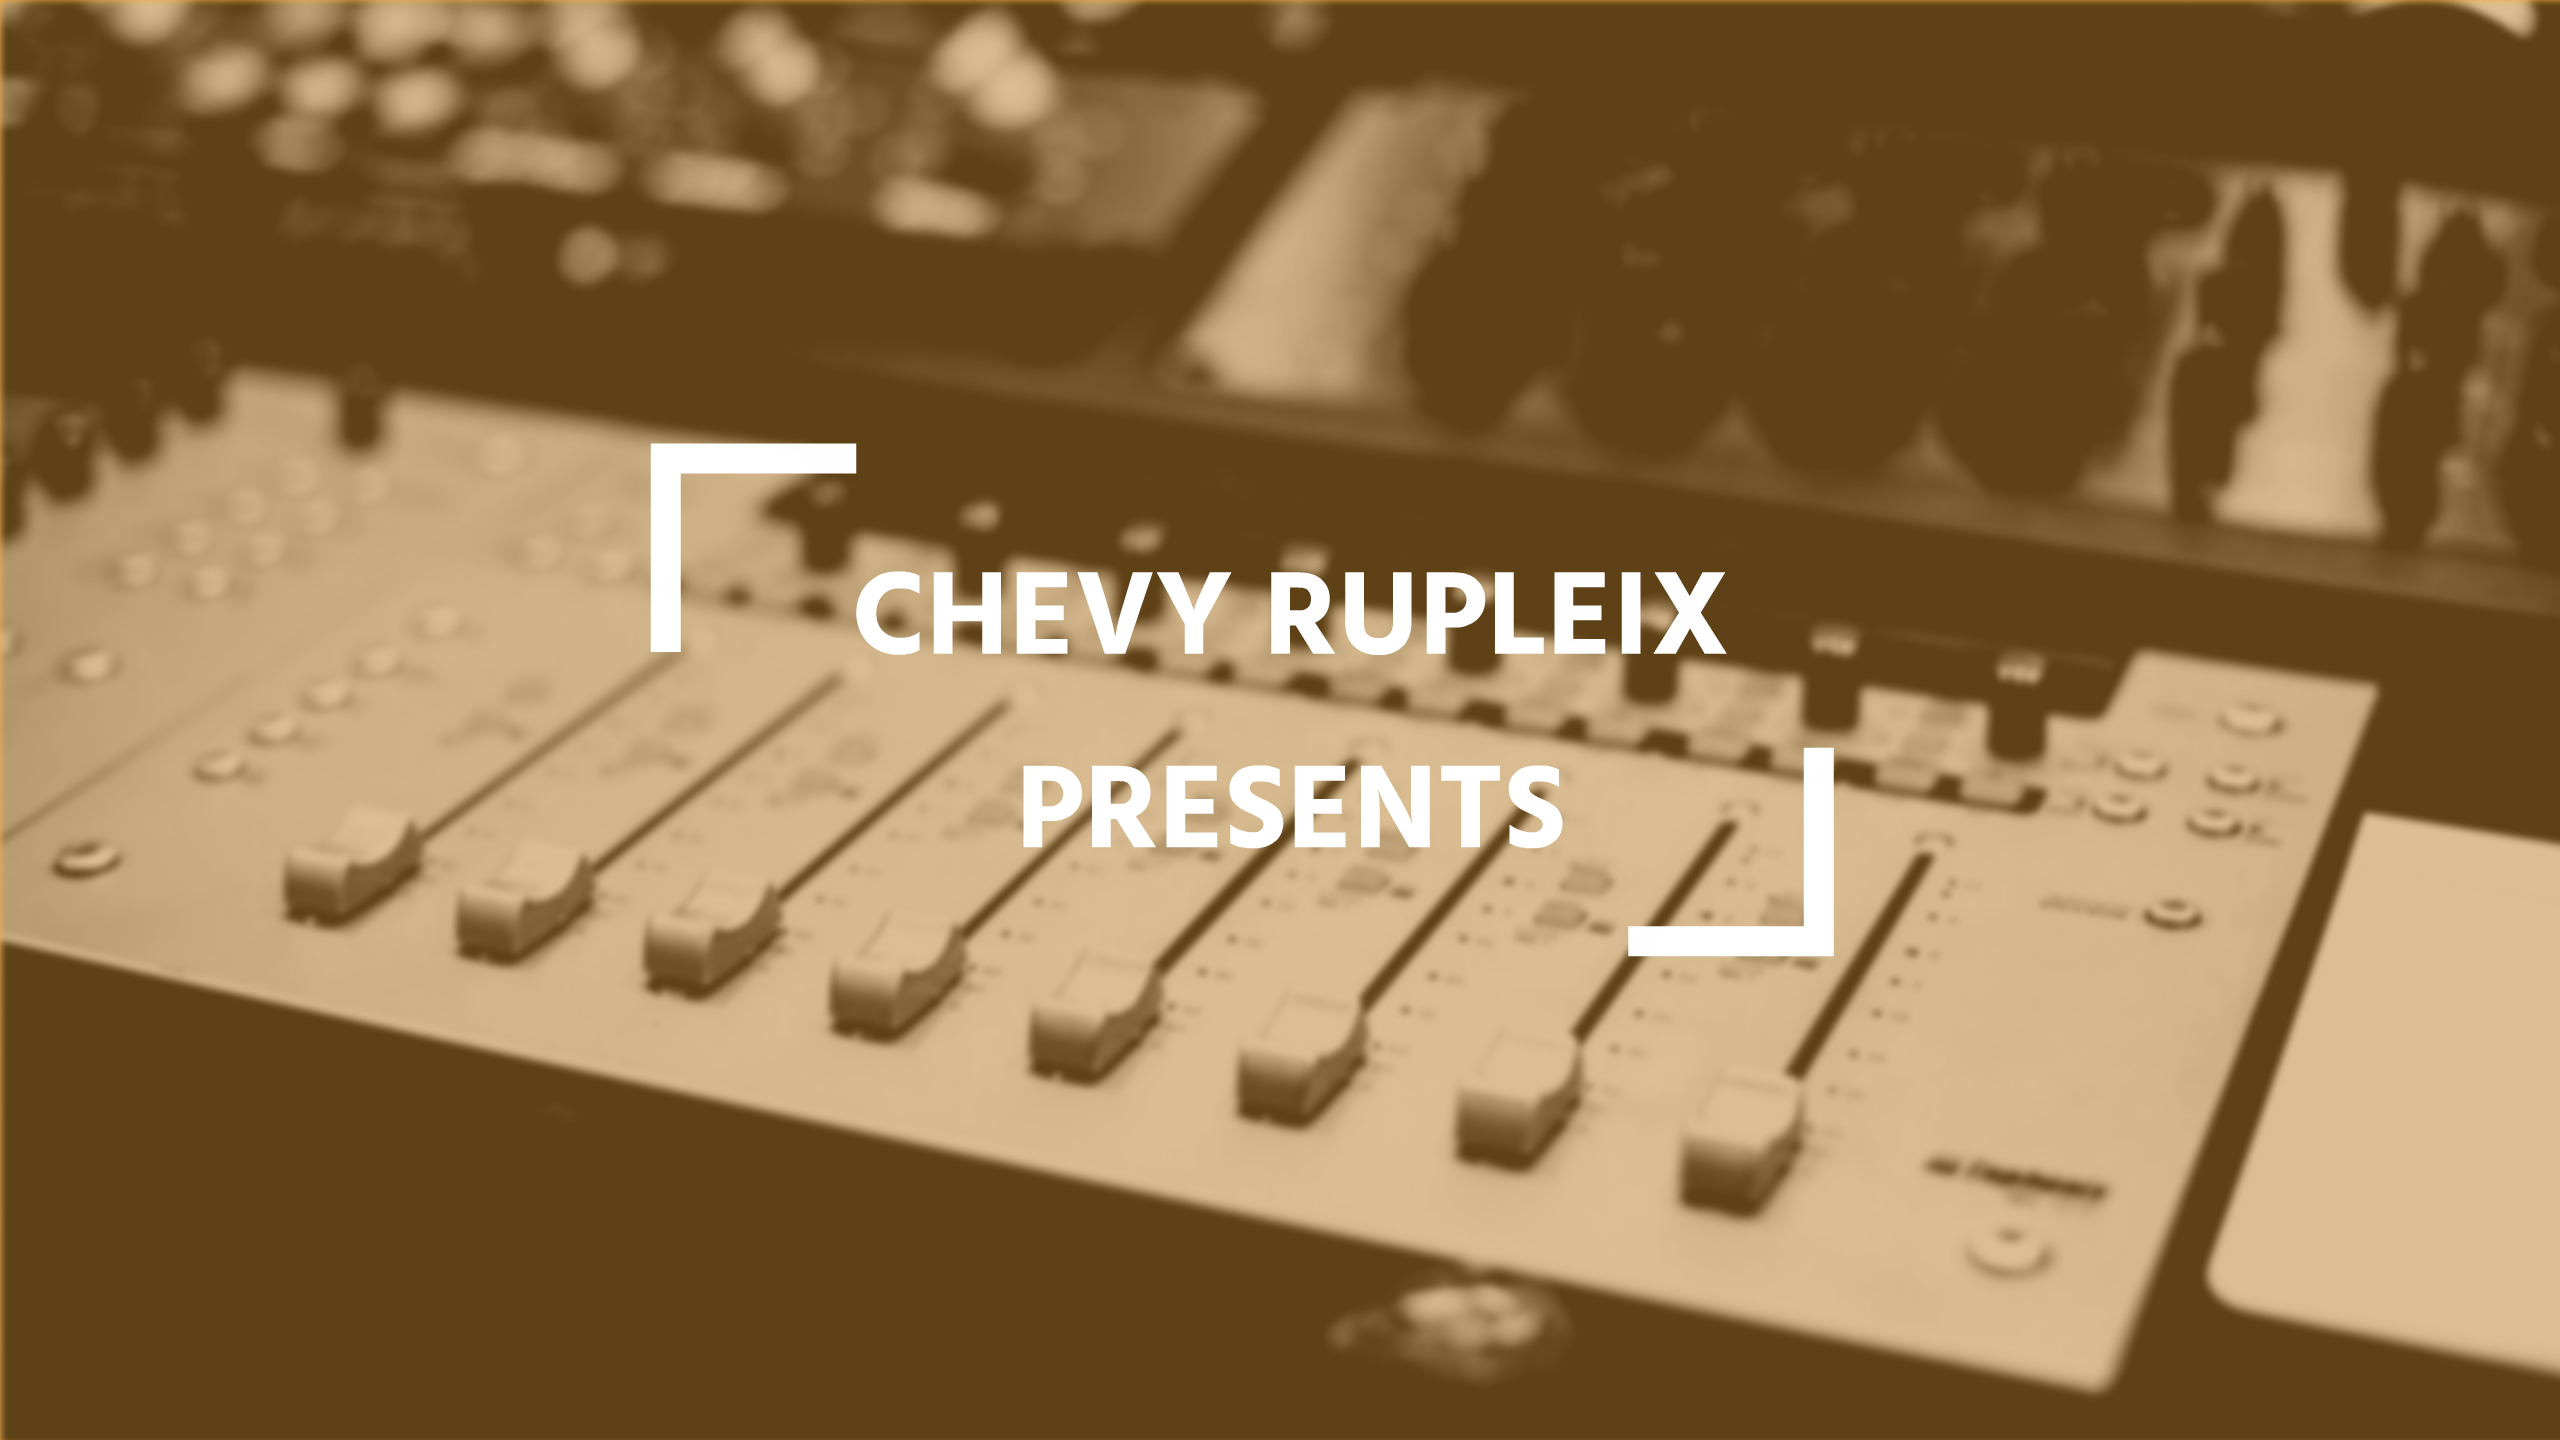 design custom sound effects or loops